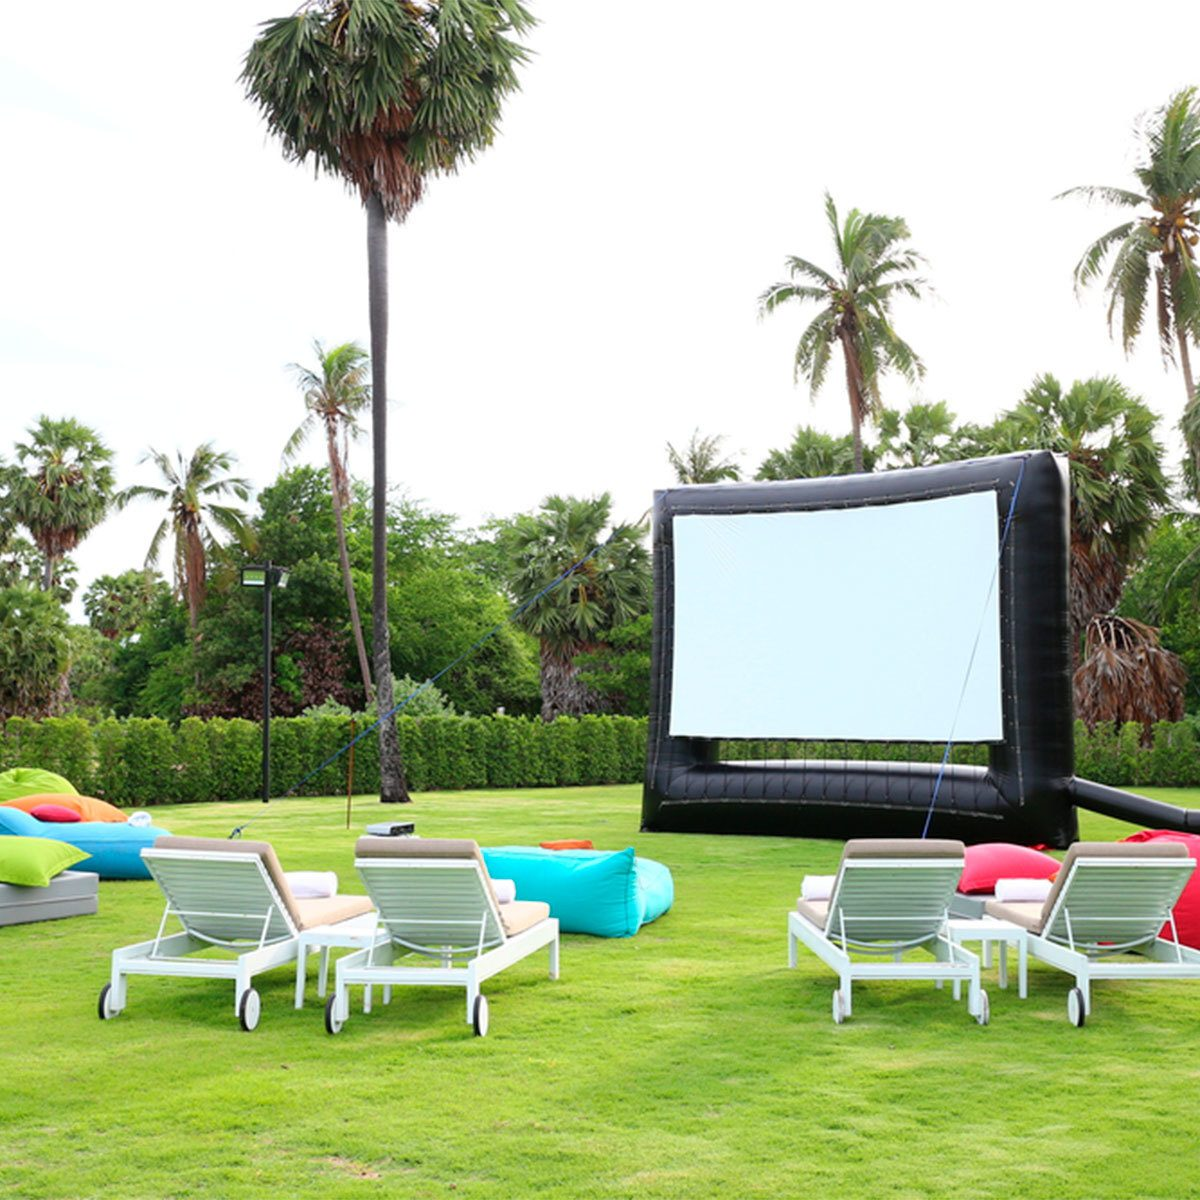 backyard projector screen